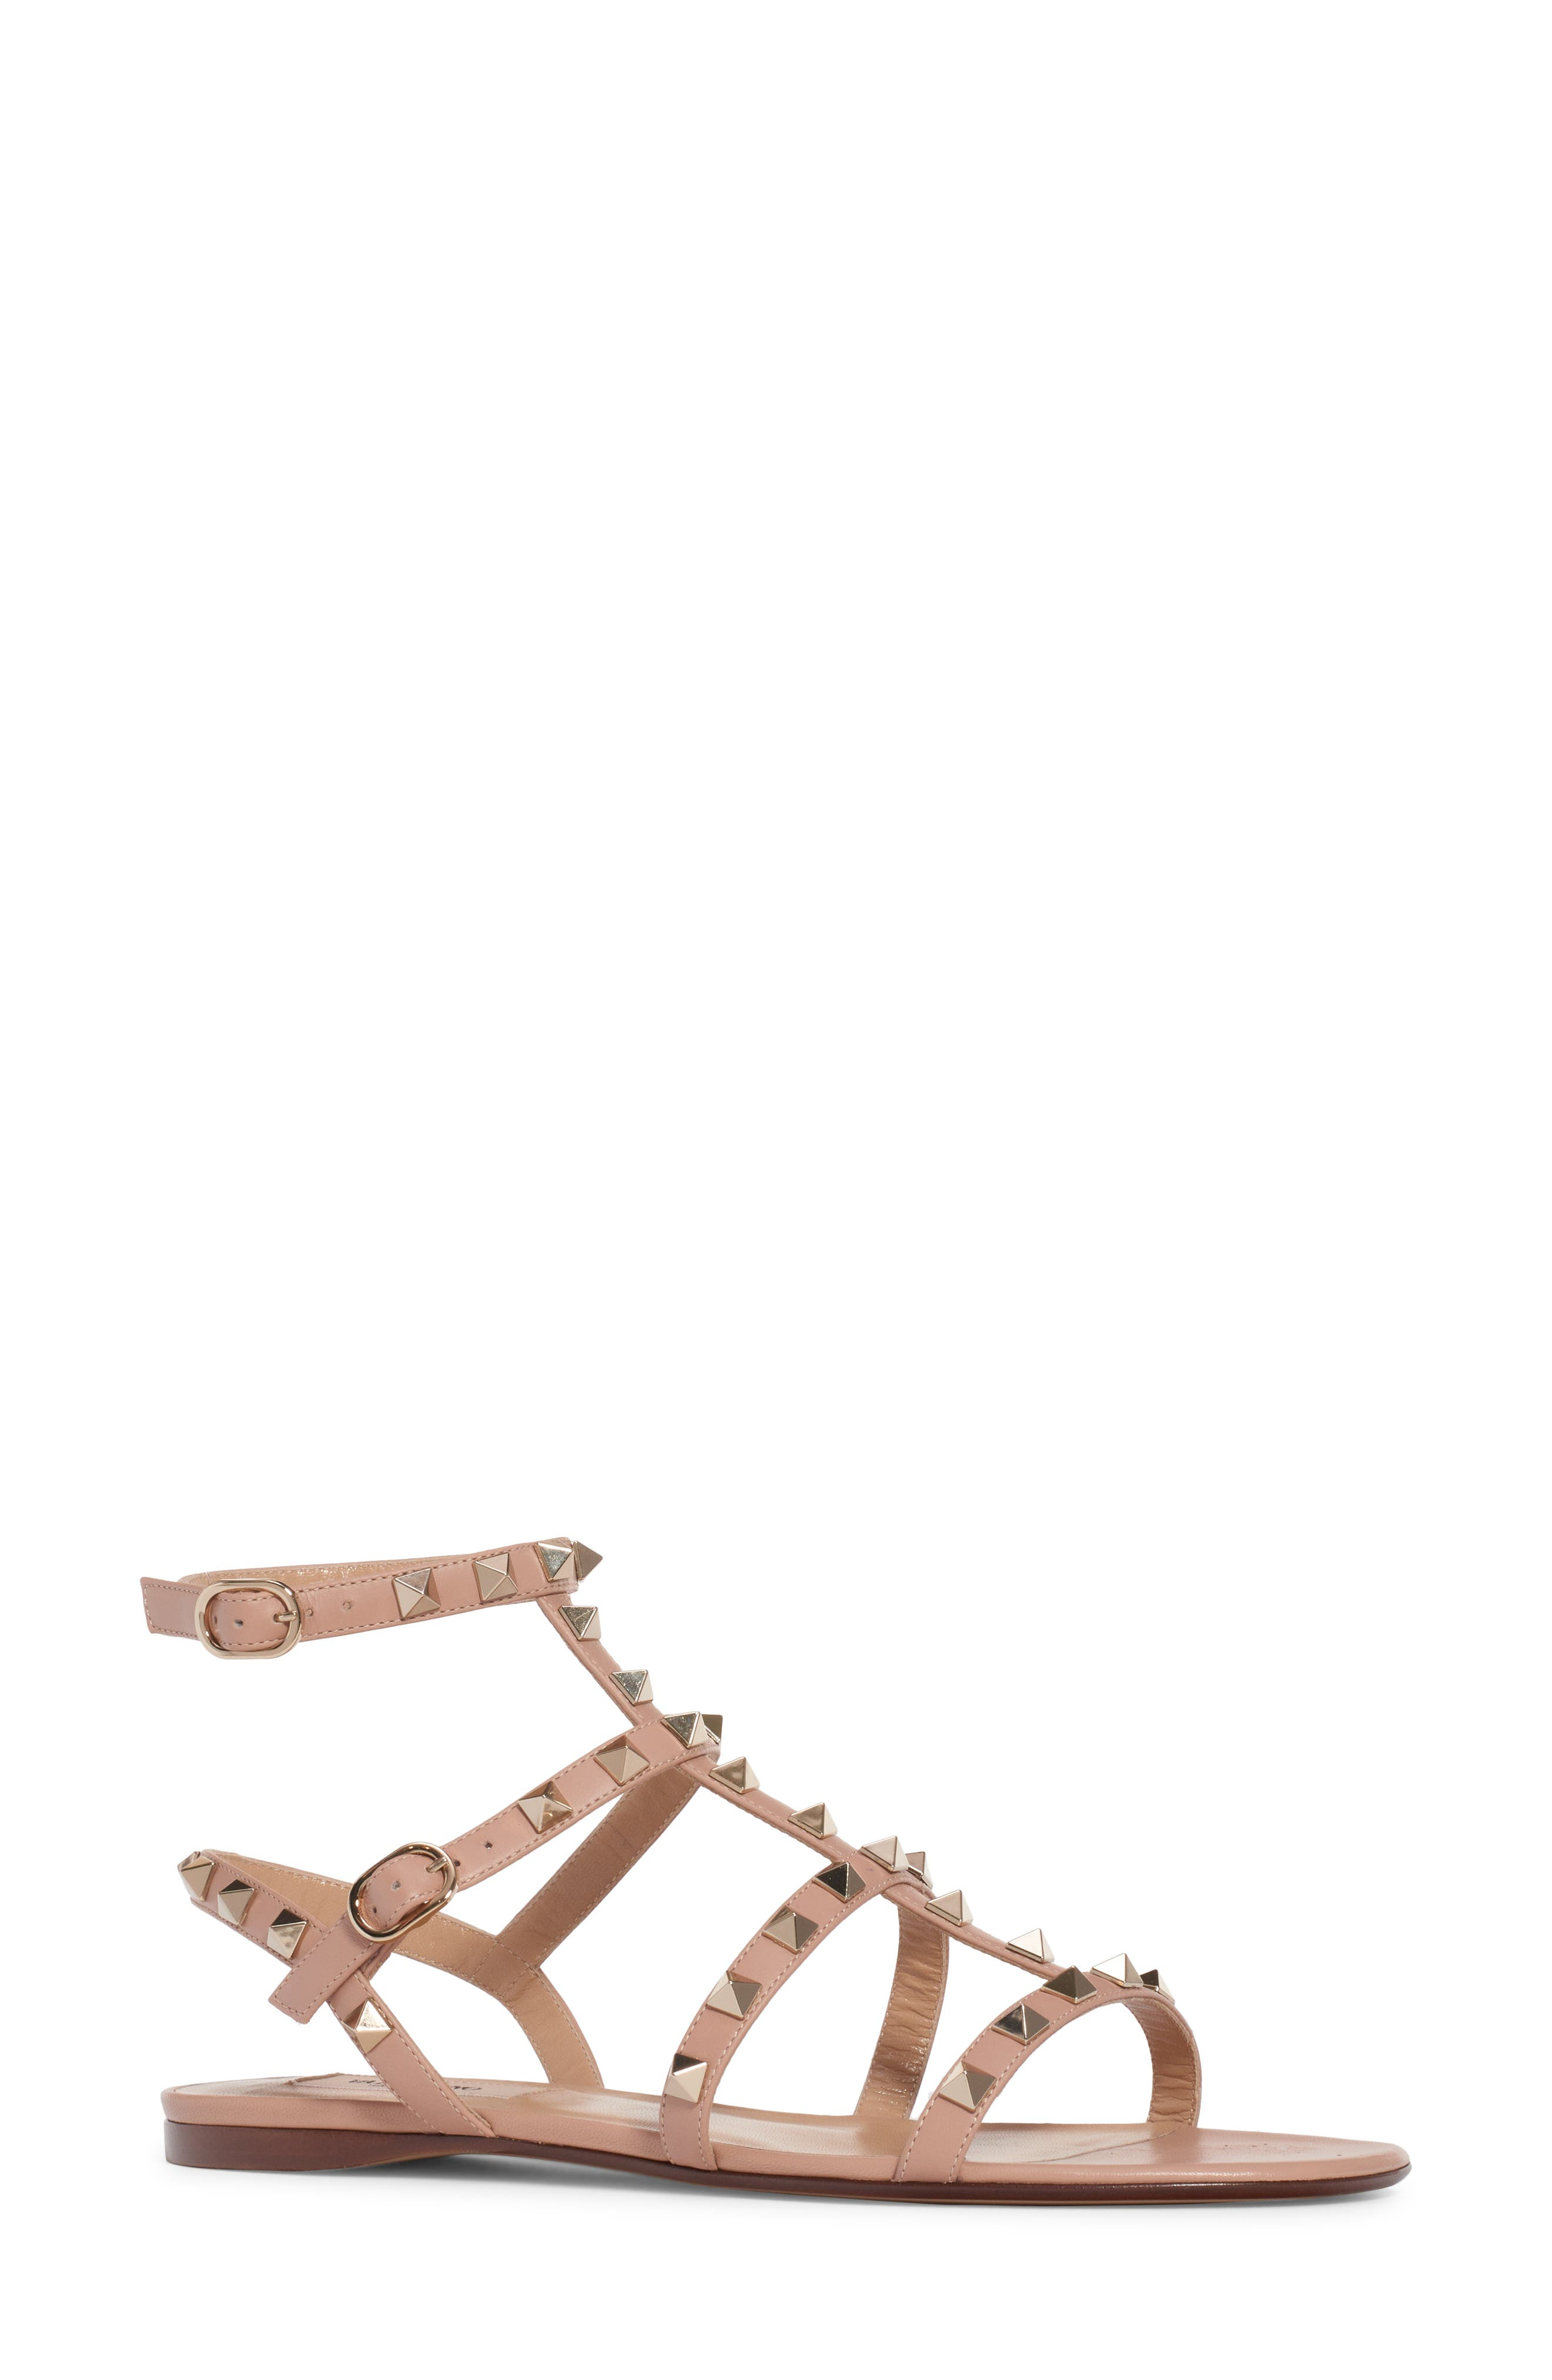 Rockstud Cage Sandal, Main, color, ROSE BEIGE